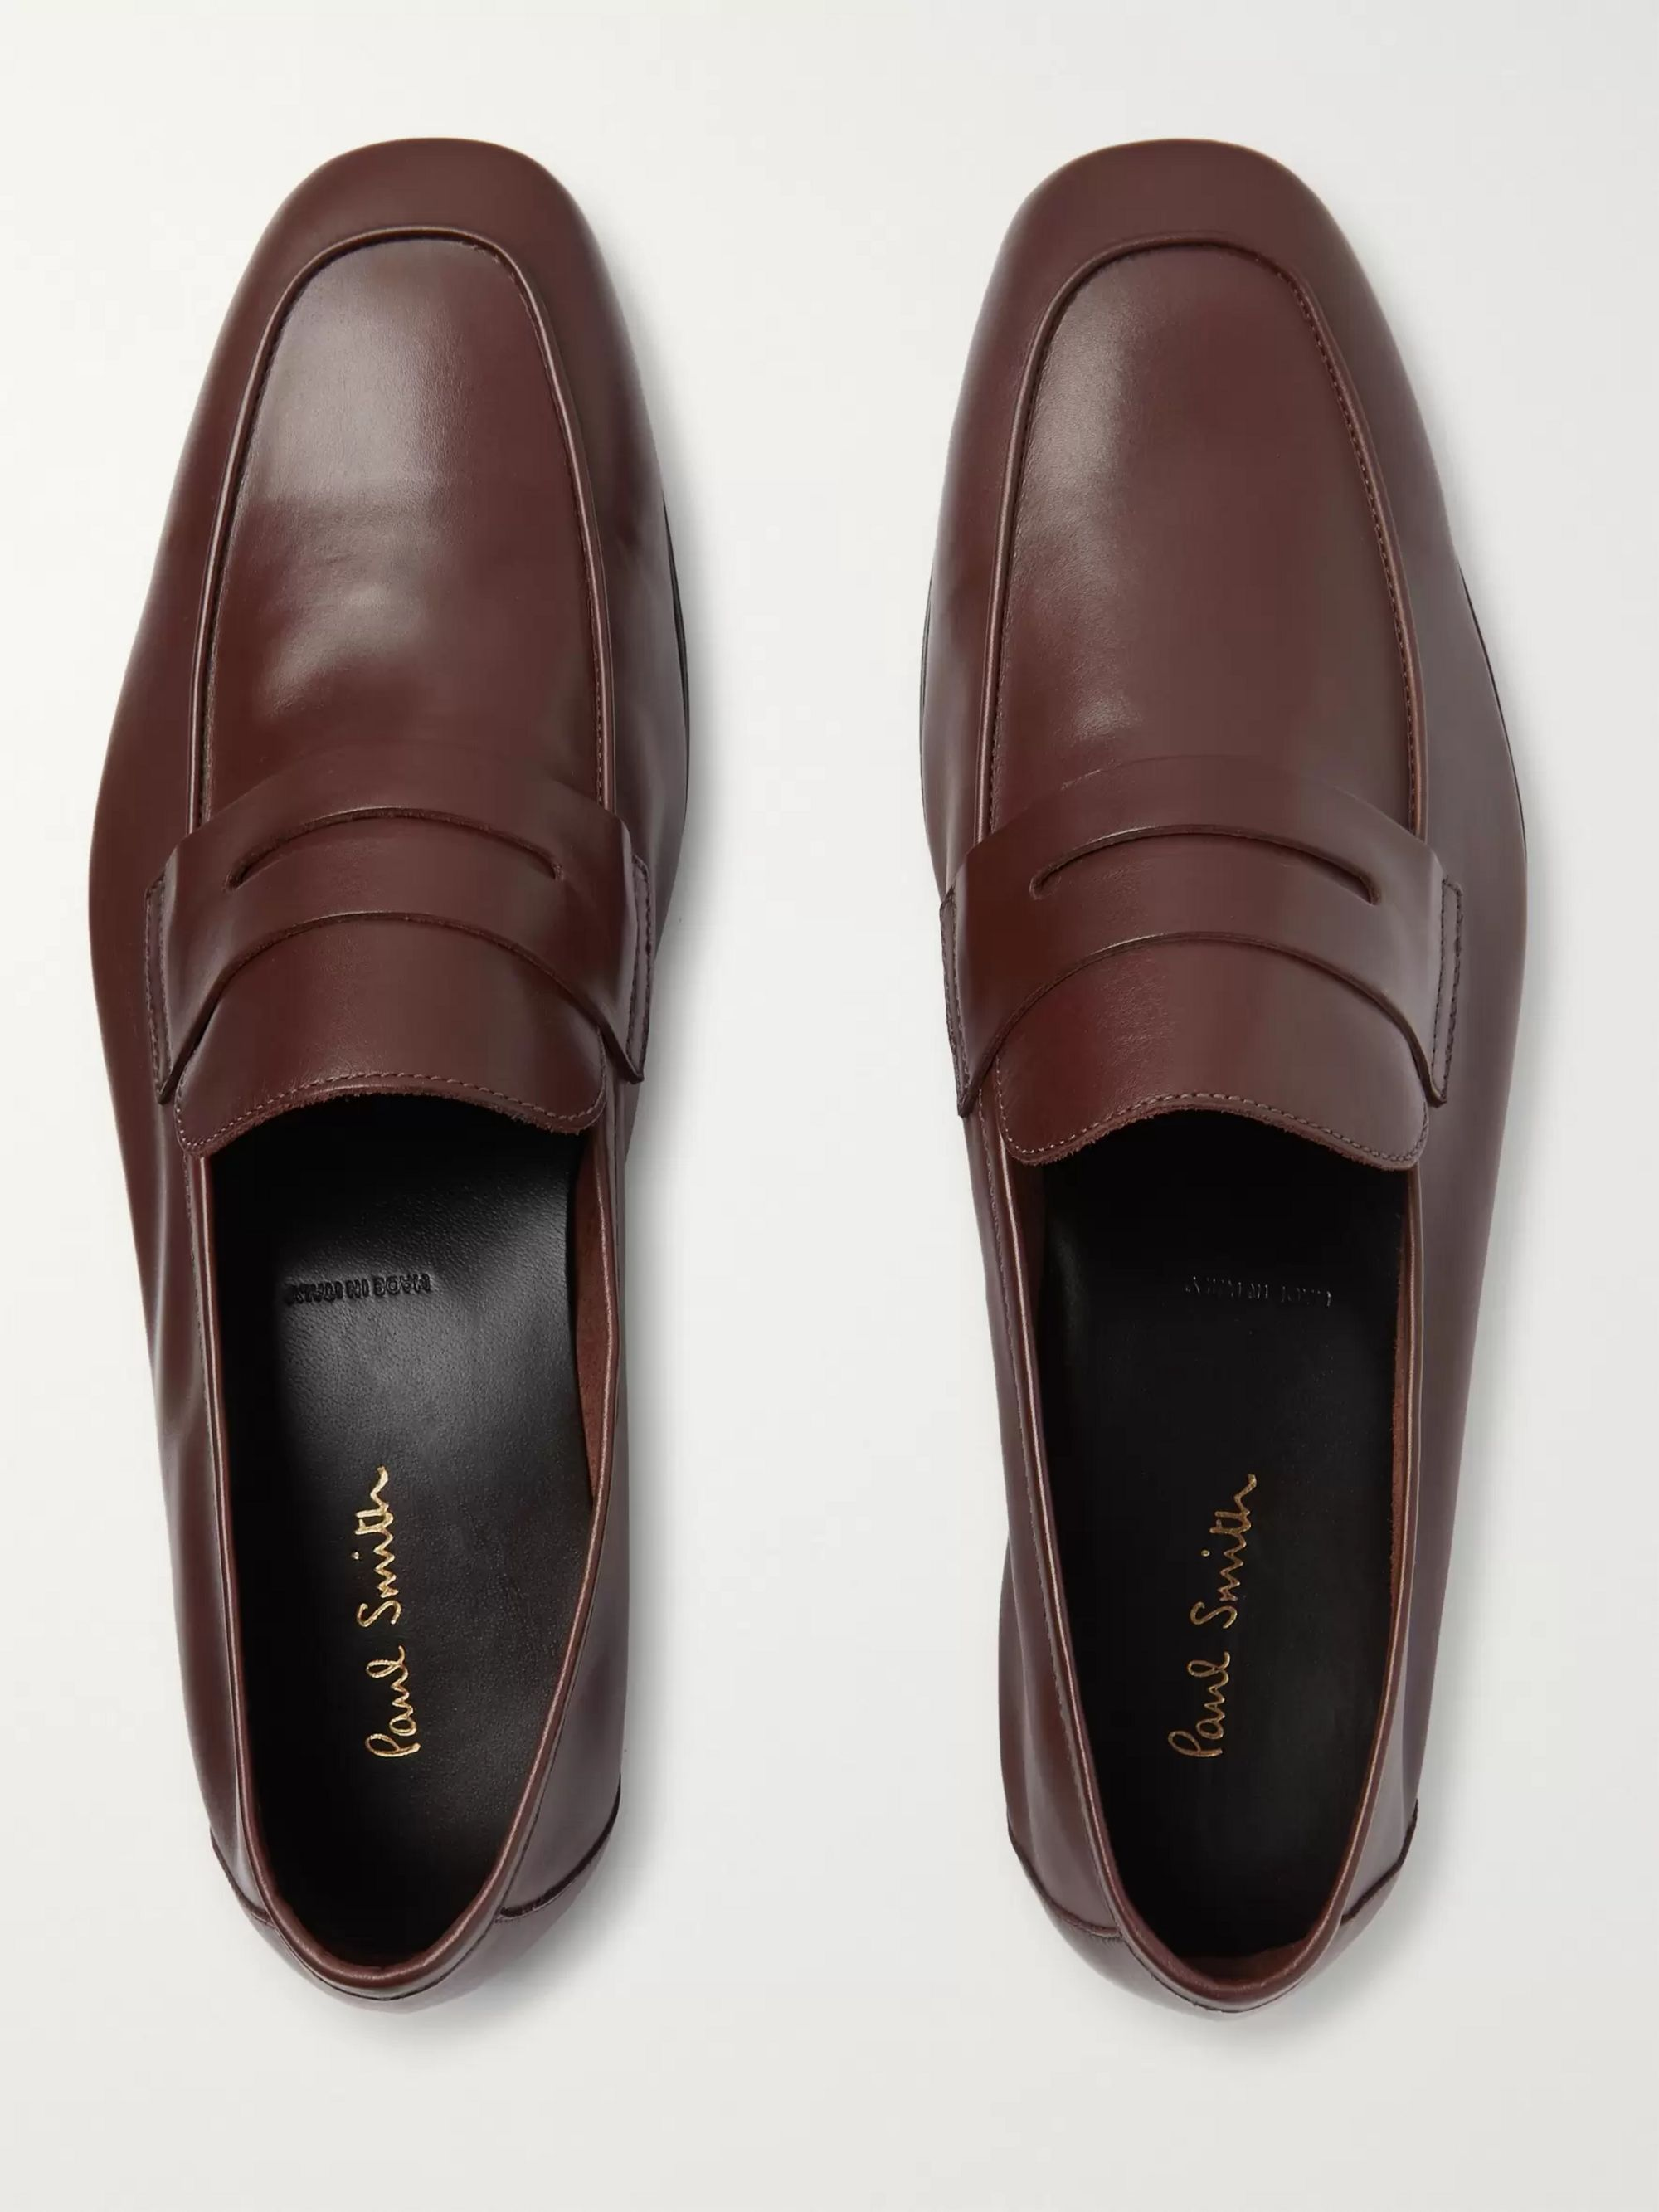 Paul Smith Glynn Leather Penny Loafers